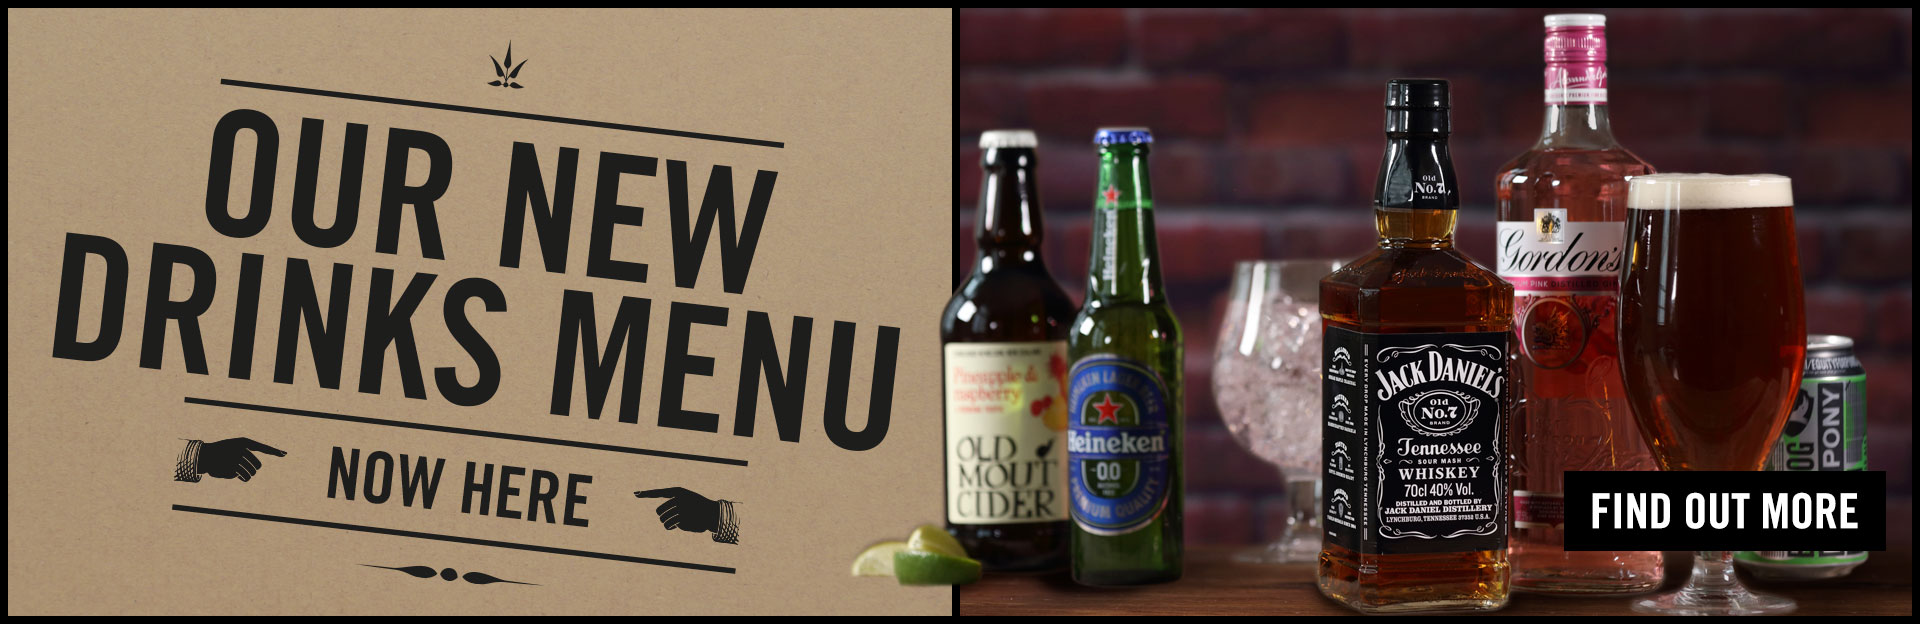 New Drinks Menu Coming Soon at The Daylight Inn